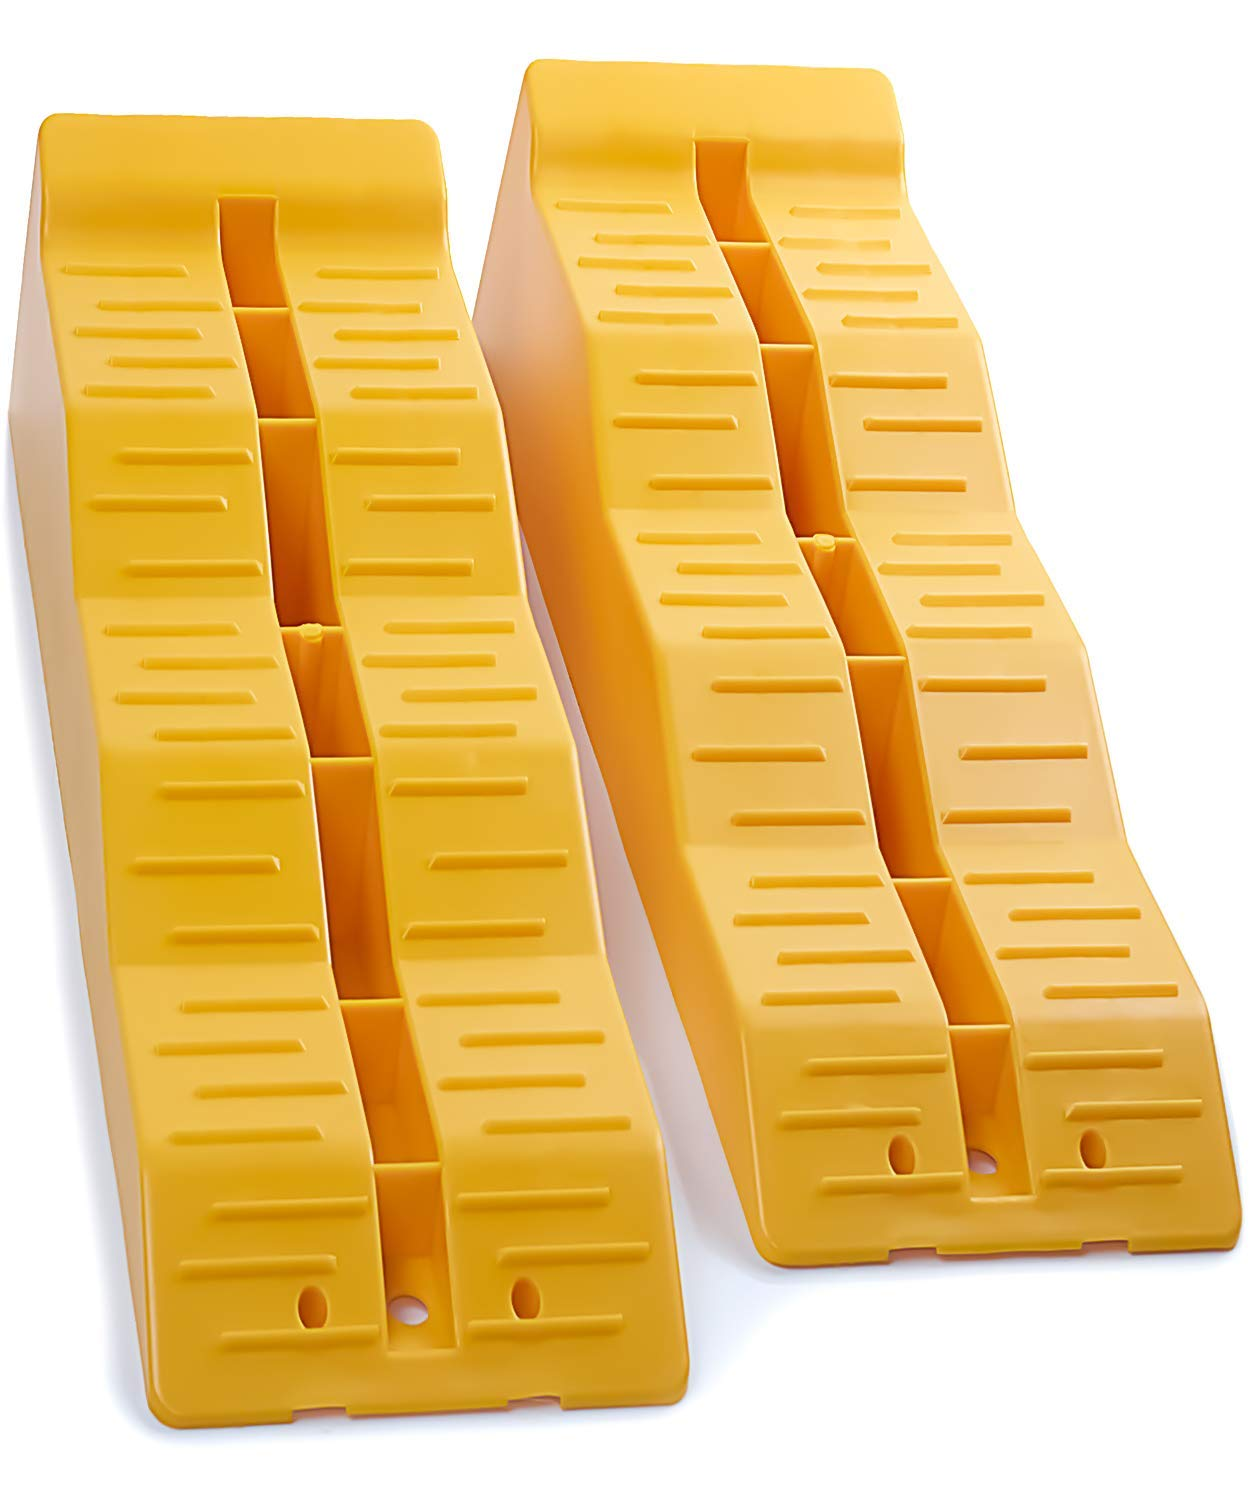 OxGord RV Camper Leveler Ramps Leveling Blocks for Travel Trailer Levelers for RVS Campers (Pack of 2) -